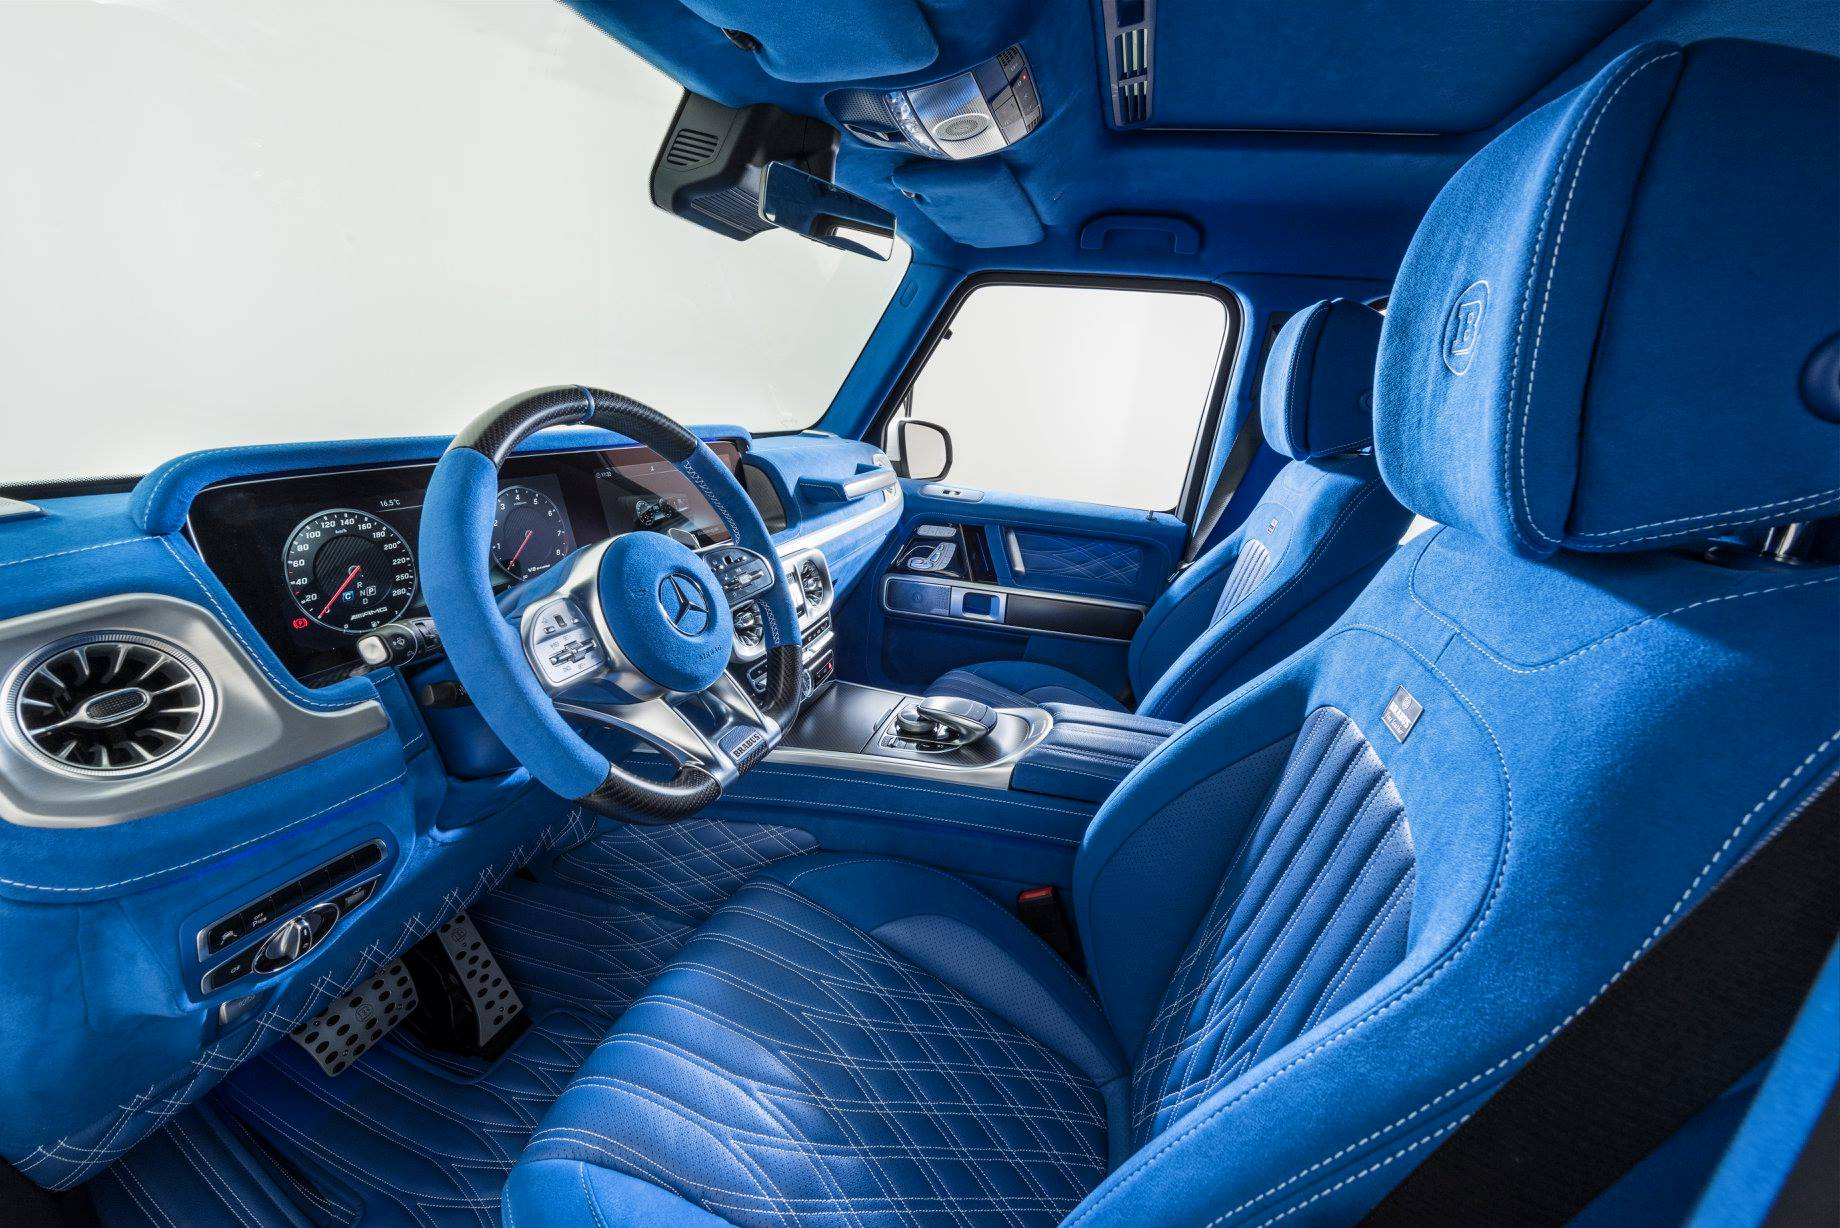 2019 Mercedes Amg G63 Looks Amazing In Brabus Blue Leather